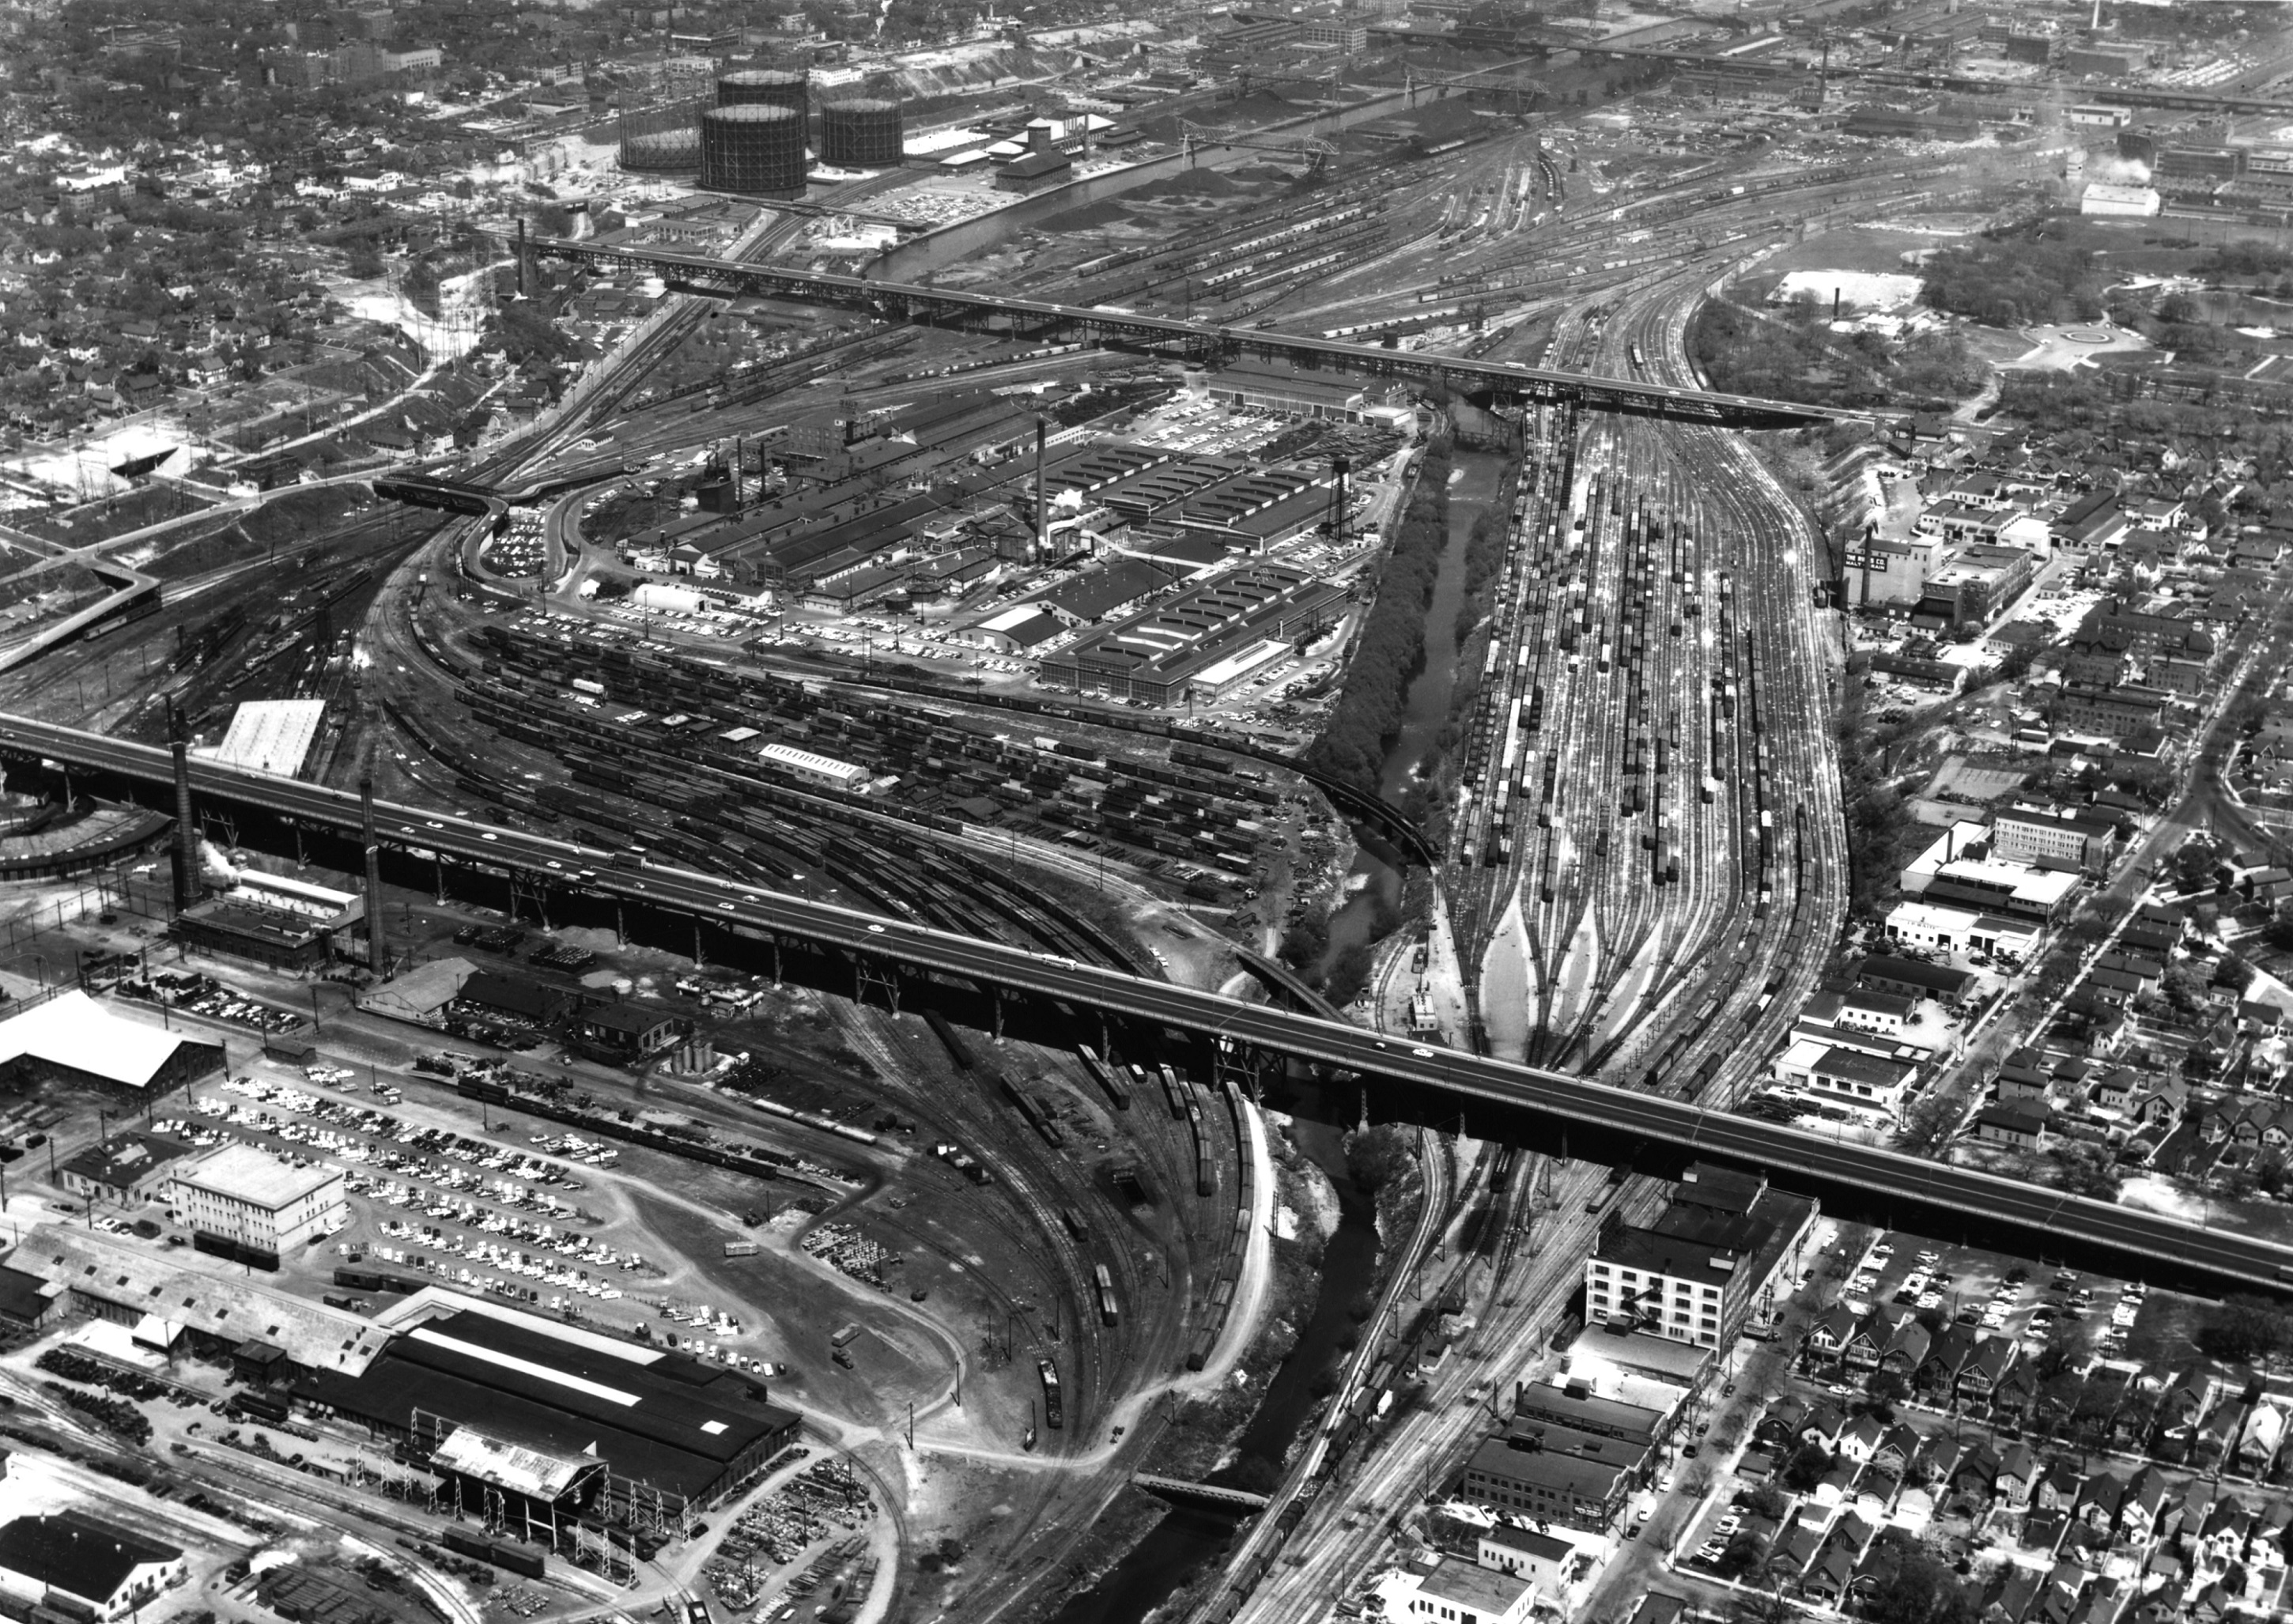 <table class=&quot;lightbox&quot;><tr><td colspan=2 class=&quot;lightbox-title&quot;>Aerial View of the Menomonee Valley</td></tr><tr><td colspan=2 class=&quot;lightbox-caption&quot;>Menomonee Valley in 1958, looking east, when Milwaukee's industrial economy still hummed along.</td></tr><tr><td colspan=2 class=&quot;lightbox-spacer&quot;></td></tr><tr class=&quot;lightbox-detail&quot;><td class=&quot;cell-title&quot;>Source: </td><td class=&quot;cell-value&quot;>From the Historic Photo Collection of the Milwaukee Public Library. Reprinted with permission. </td></tr><tr class=&quot;filler-row&quot;><td colspan=2>&nbsp;</td></tr></table>